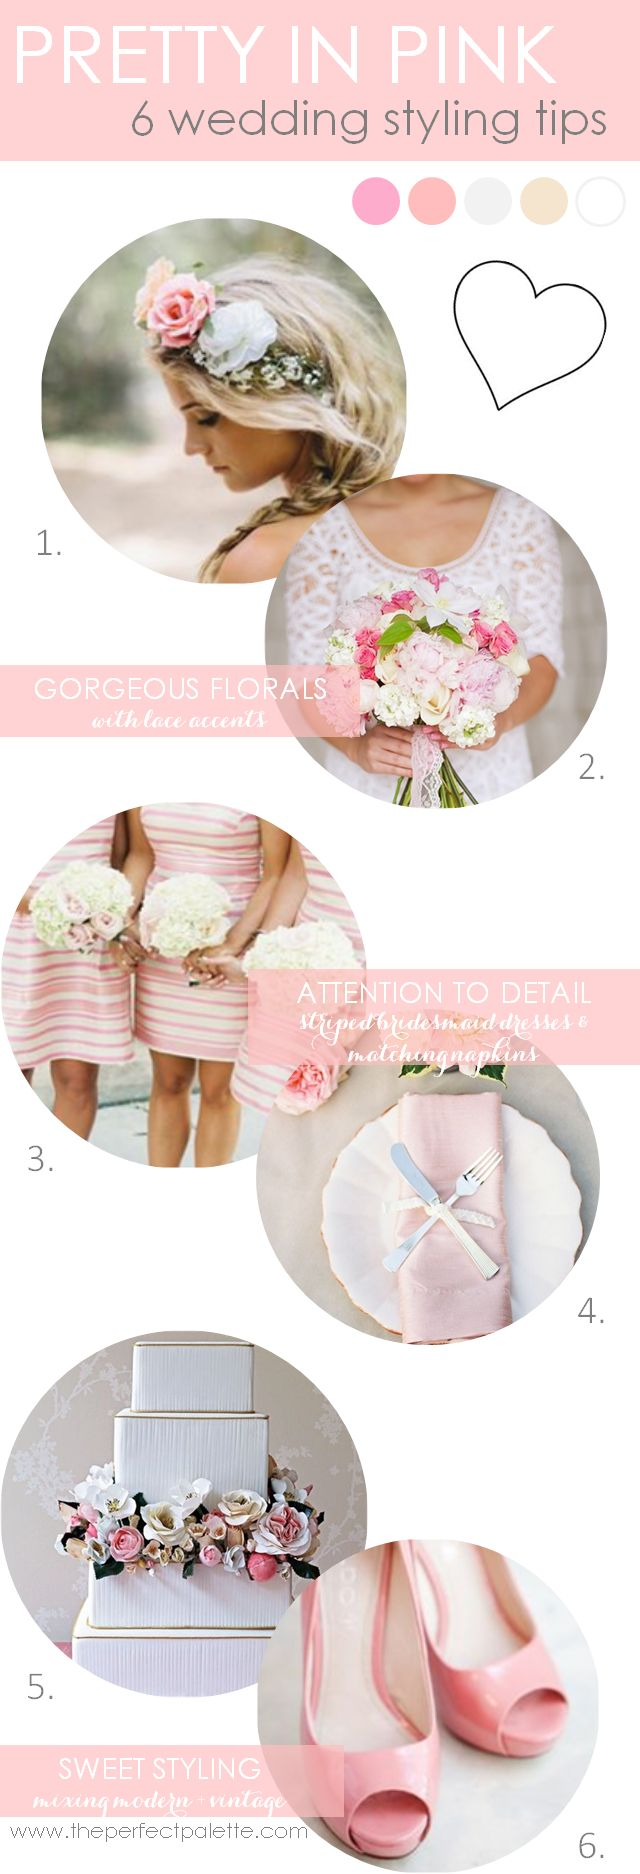 6 Wedding Styling Tips | Styling tips on how to use color to bring your wedding to life! http://www.theperfectpalette.com/2013/10/pretty-in-pink-color-your-wedding.html